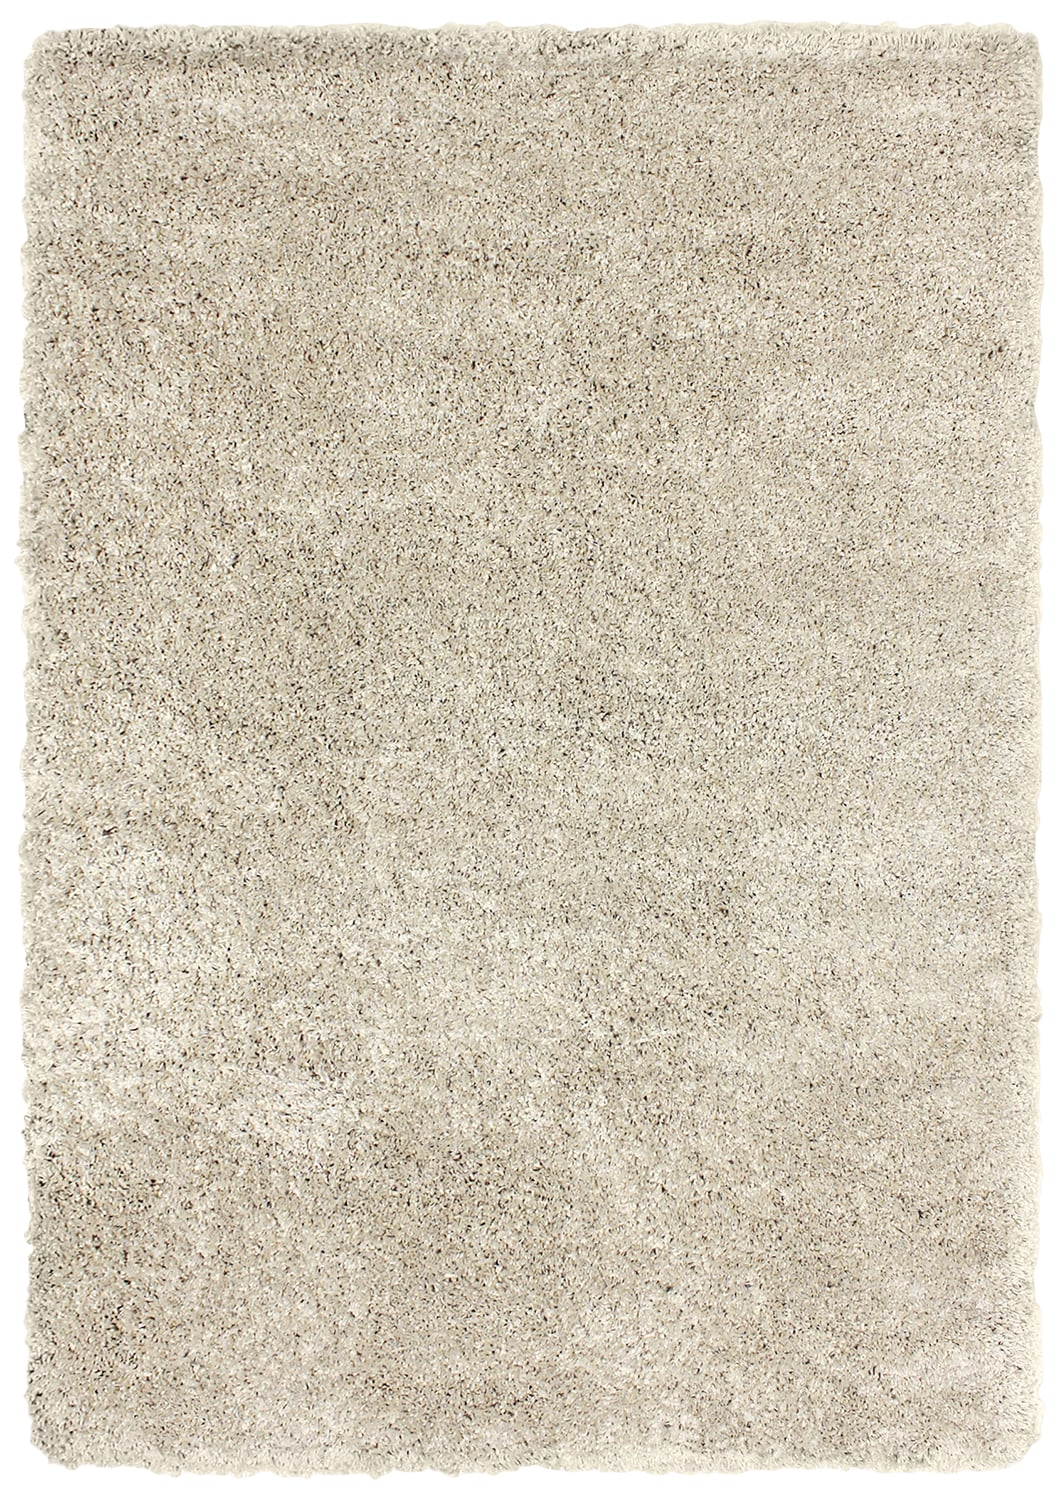 Carpette à poil long Loft couleur lin – 5 pi x 8 pi